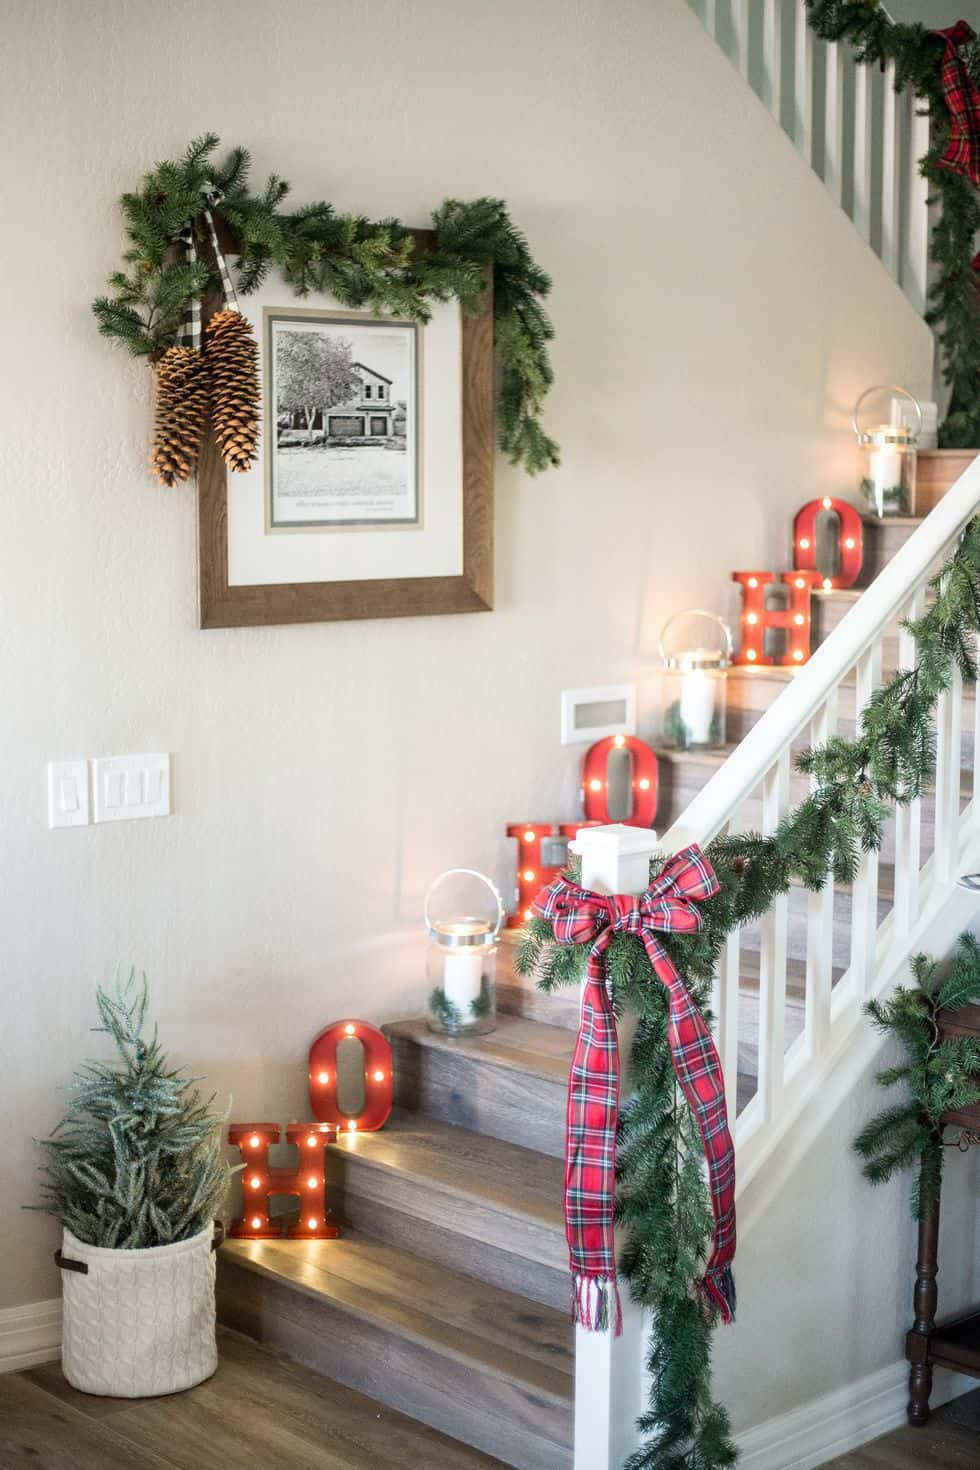 Christmas wall decor with art and garland